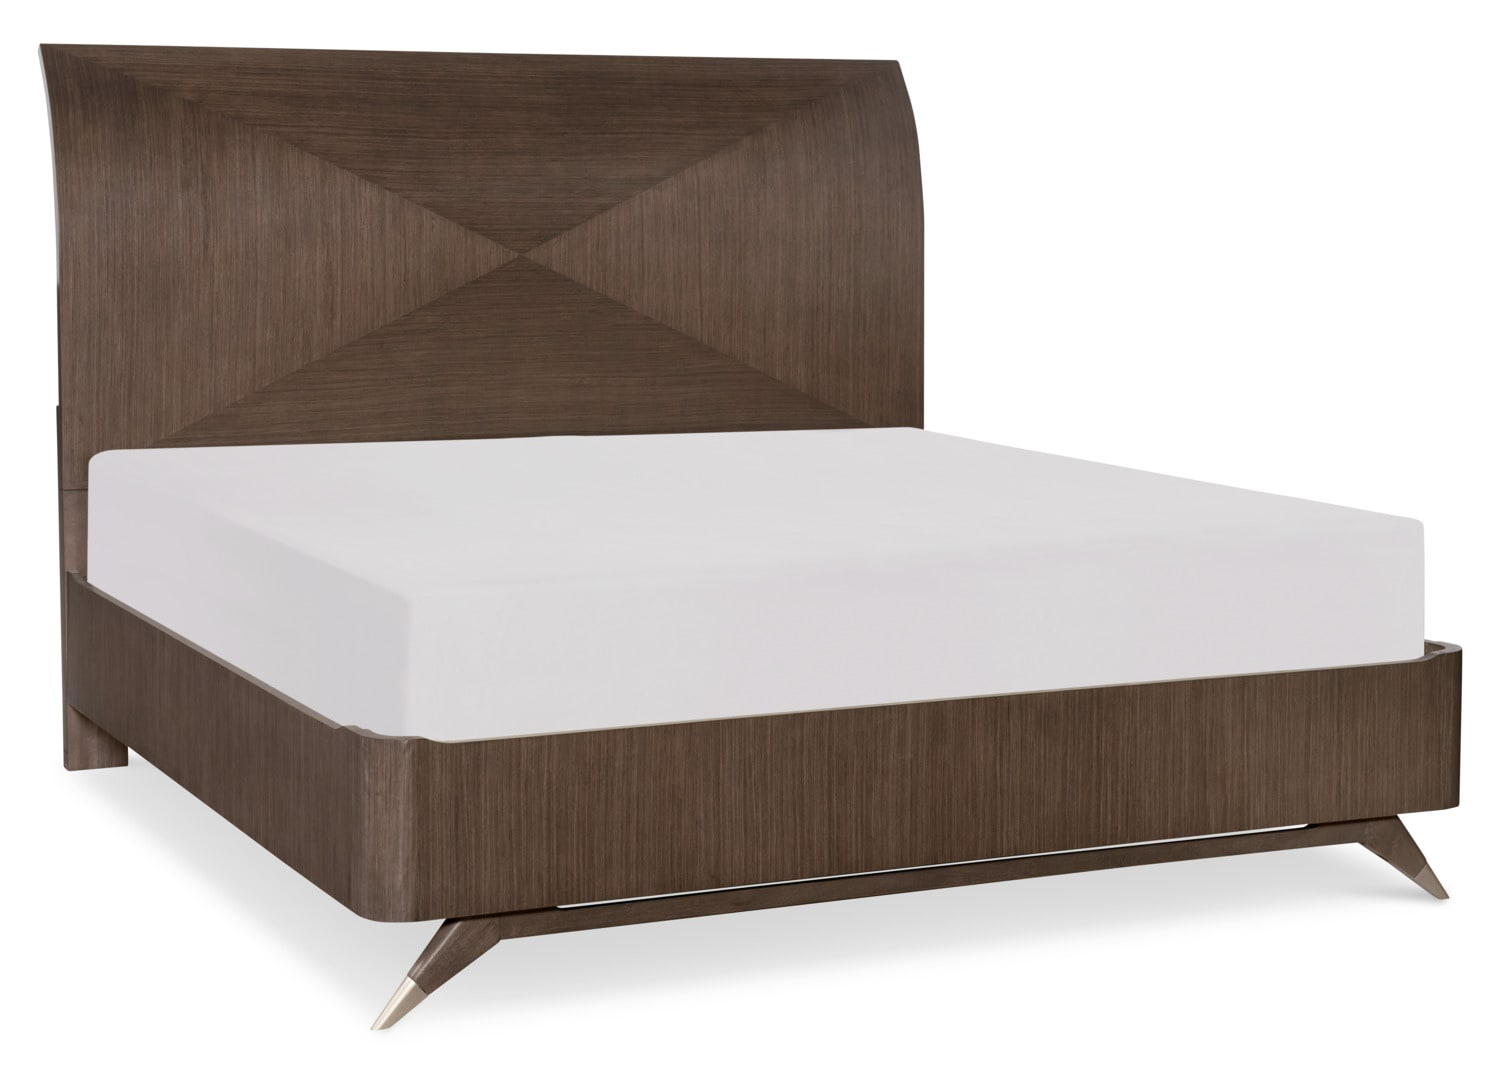 Bedroom Furniture - Rachael Ray Soho King Bed - Ash Brown